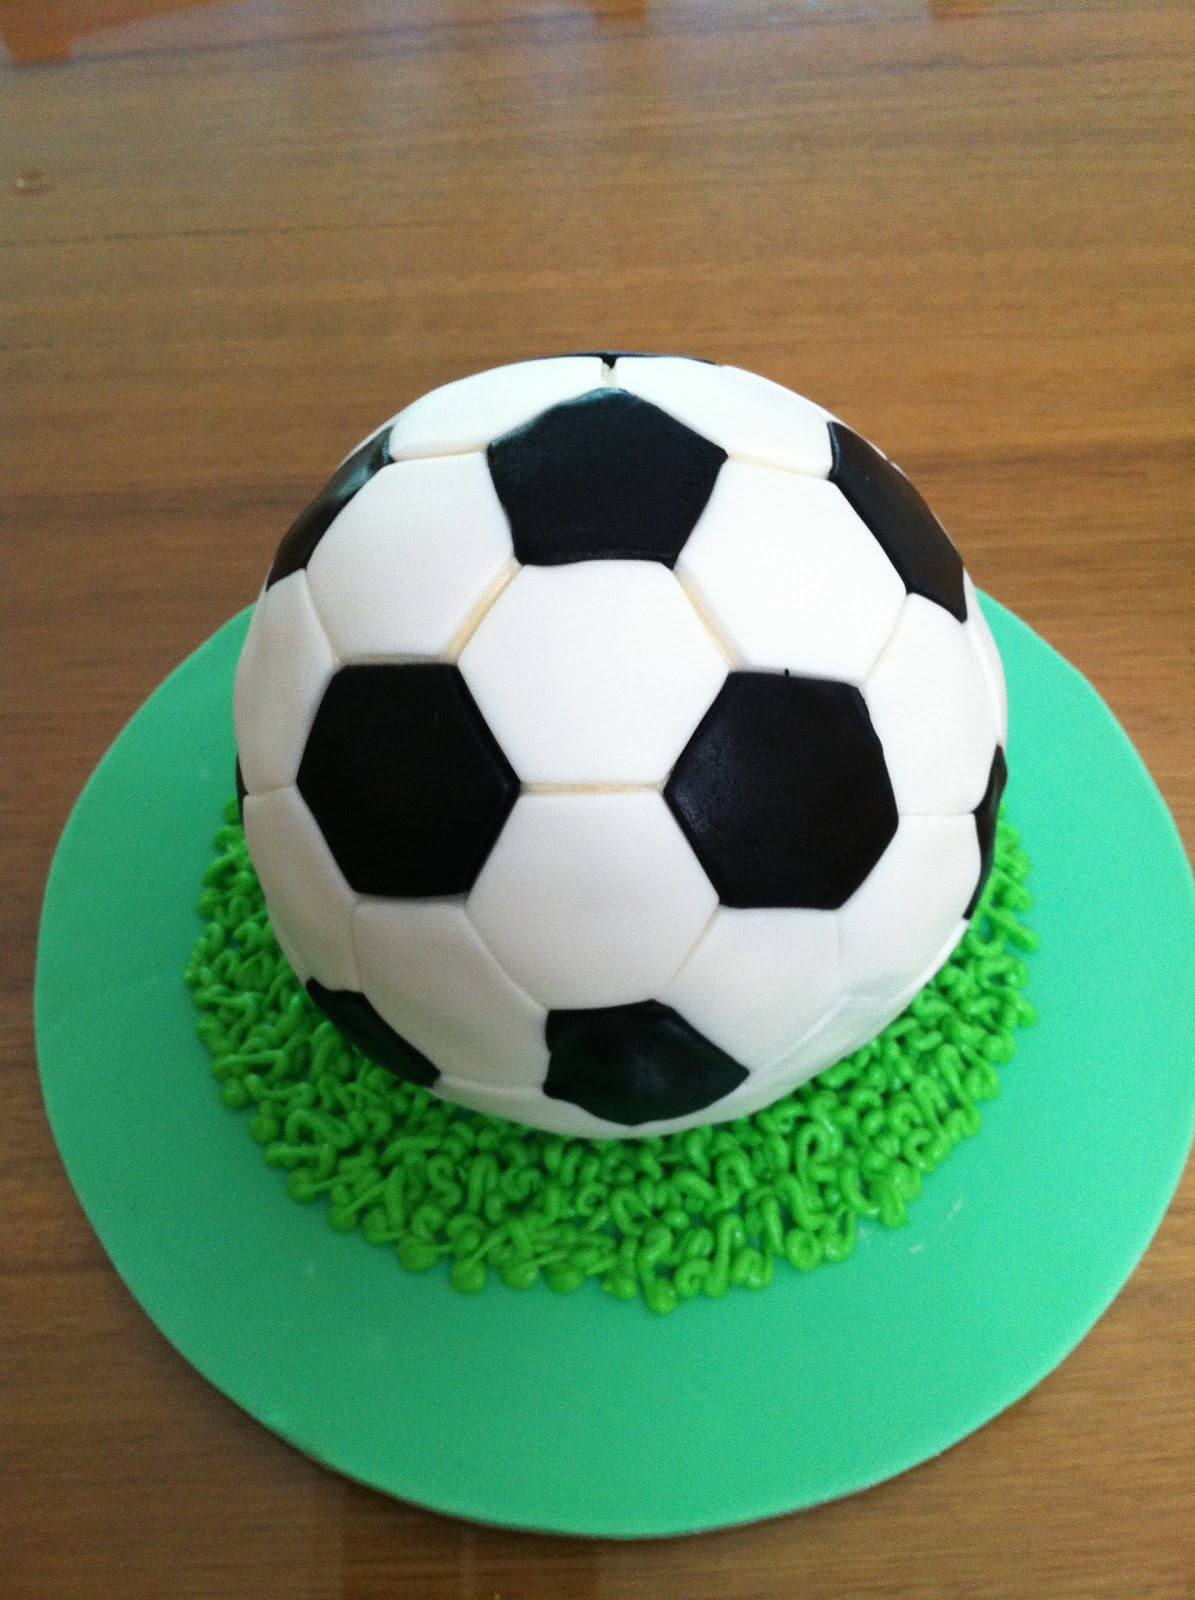 Mud Cake And More: Soccer Ball Cake v2